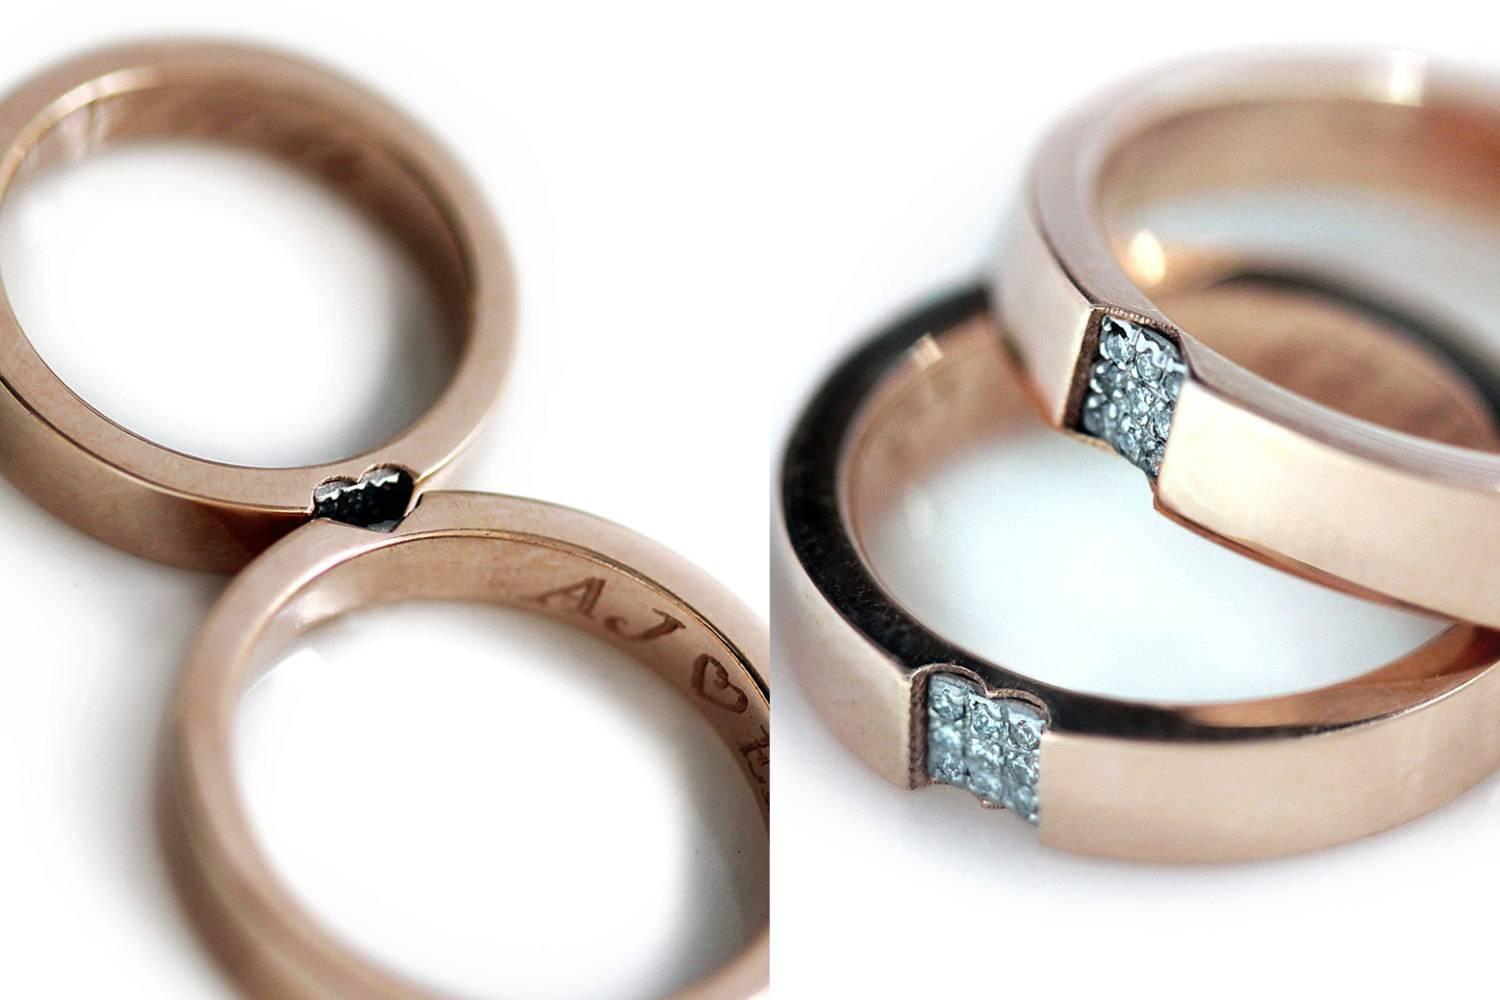 Ring Wedding Ring Couple Sets Video Game Wedding Rings Where To Within Couple Rose Gold Wedding Bands (View 9 of 15)